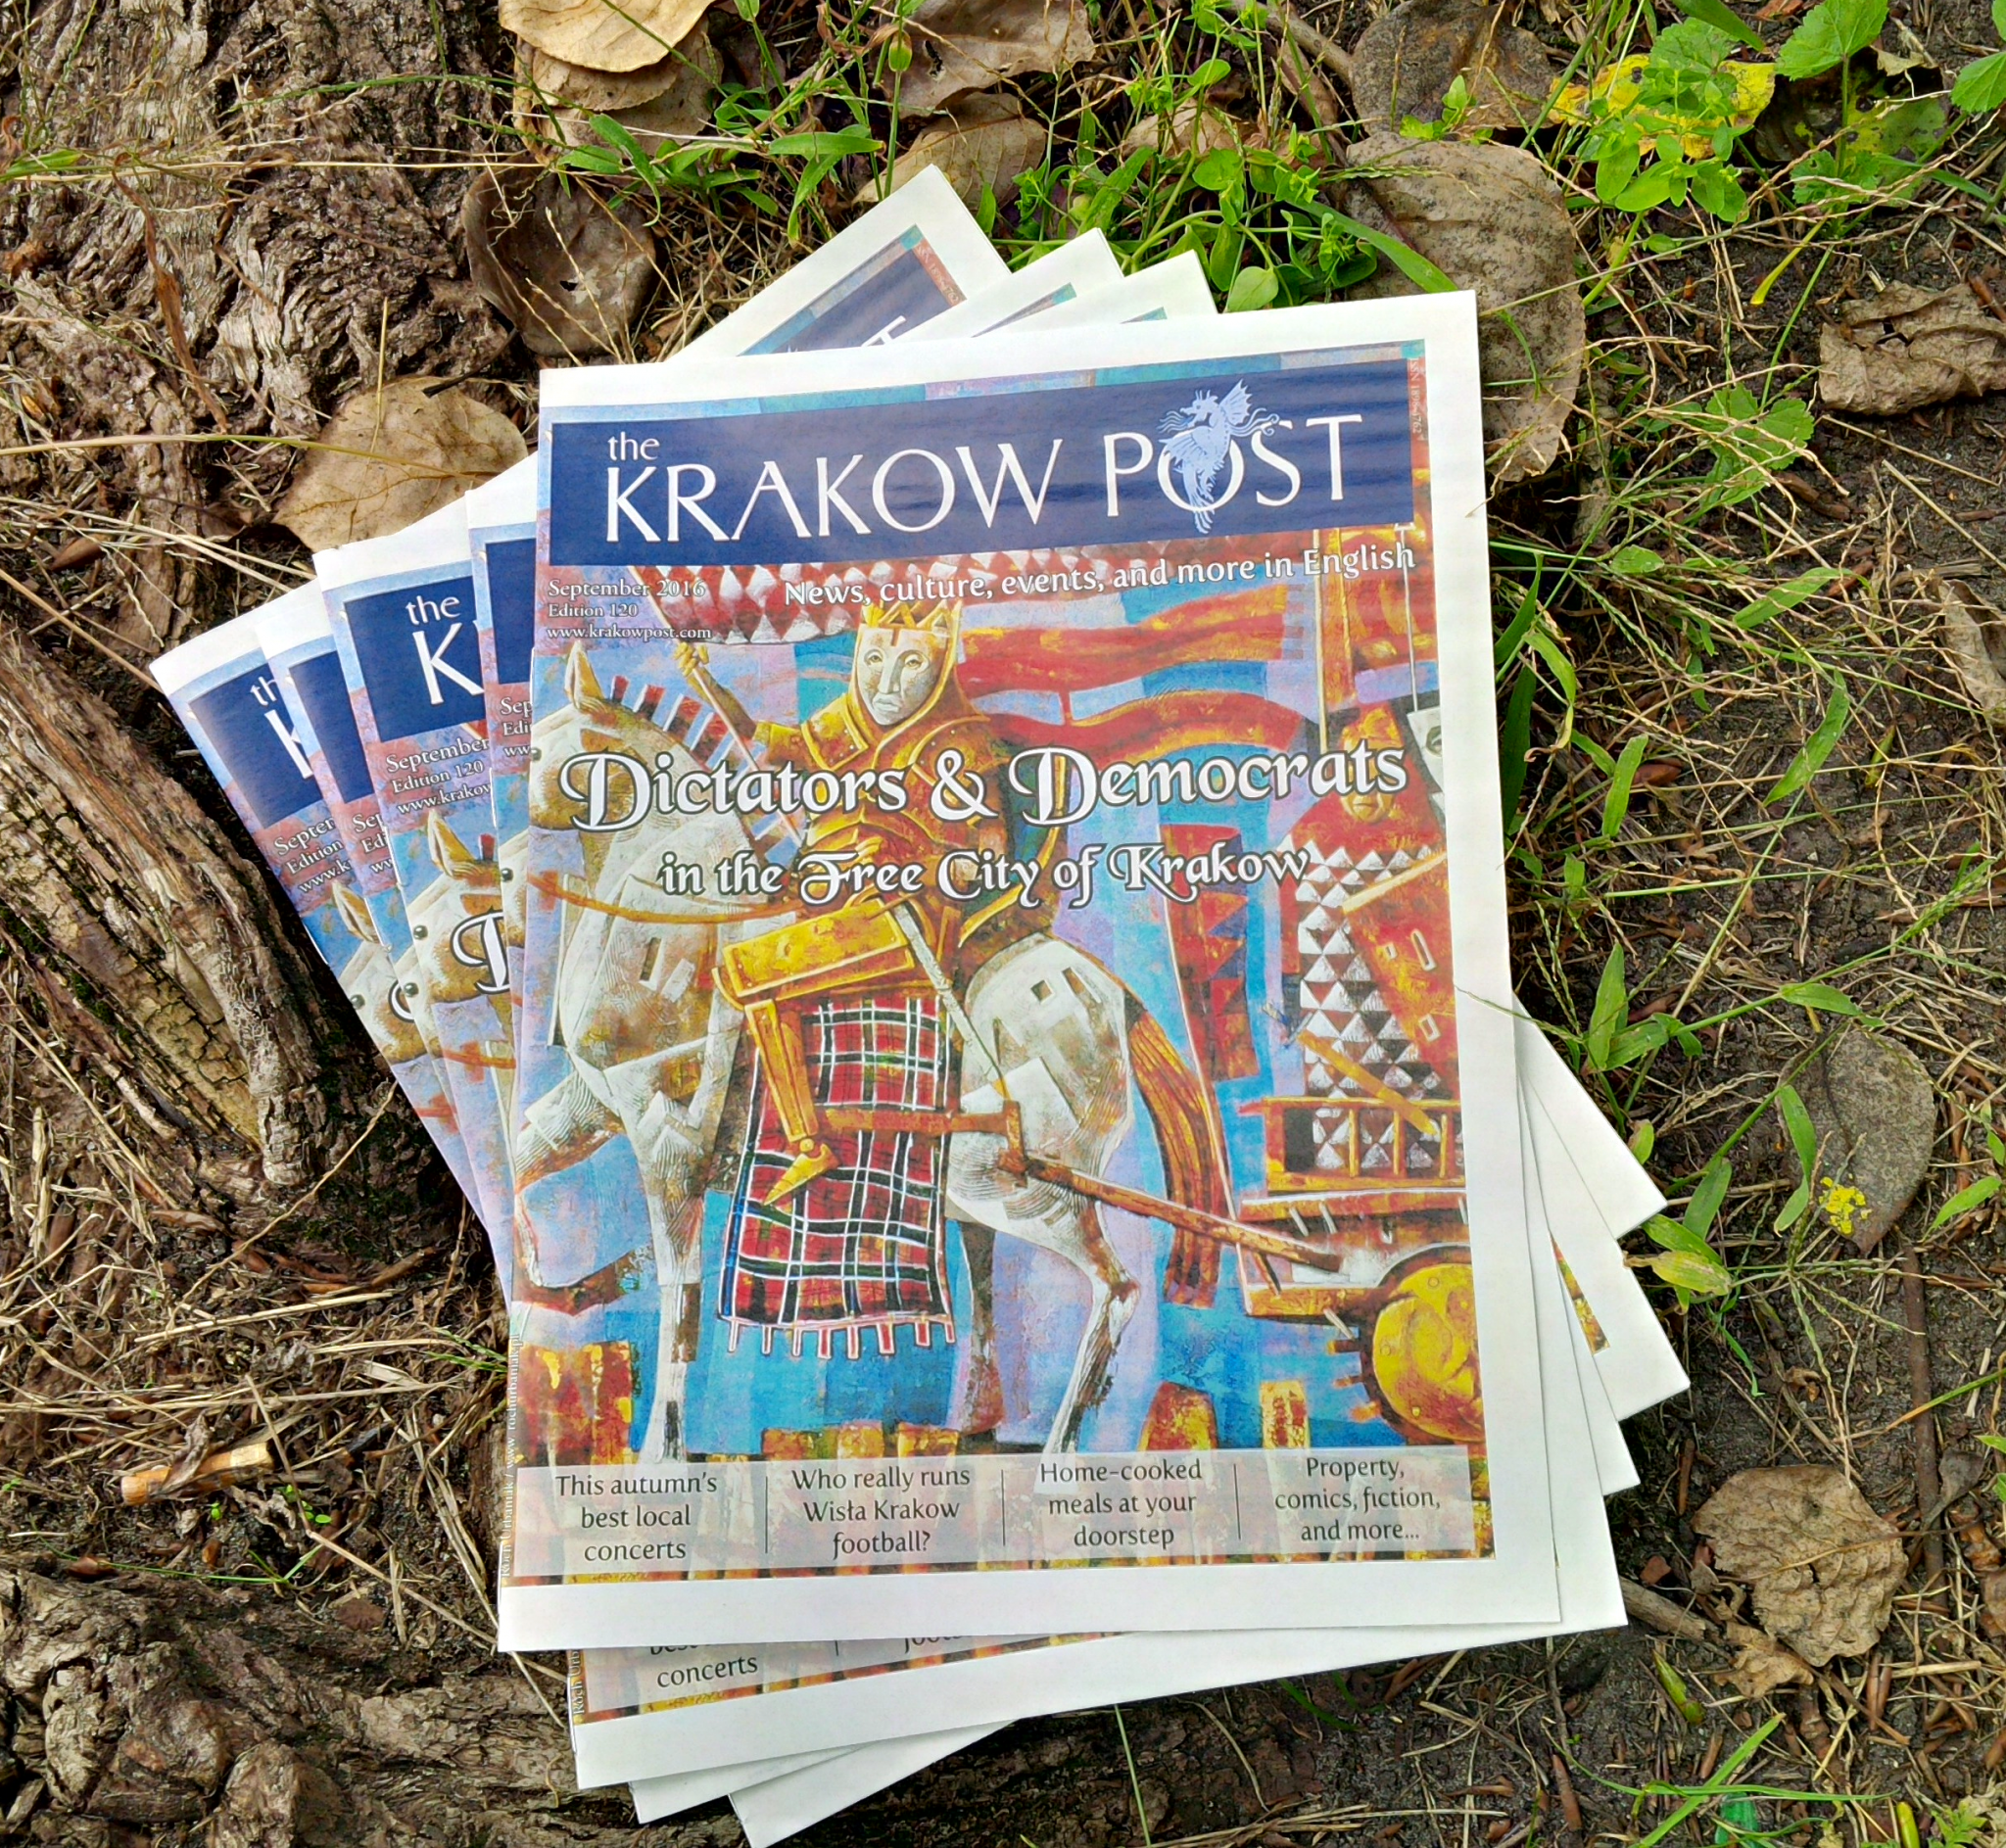 'Fianna' by Roch Urbaniak, inspired by warriors of Irish mythology, was featured on the 120th print edition of The Krakow Post